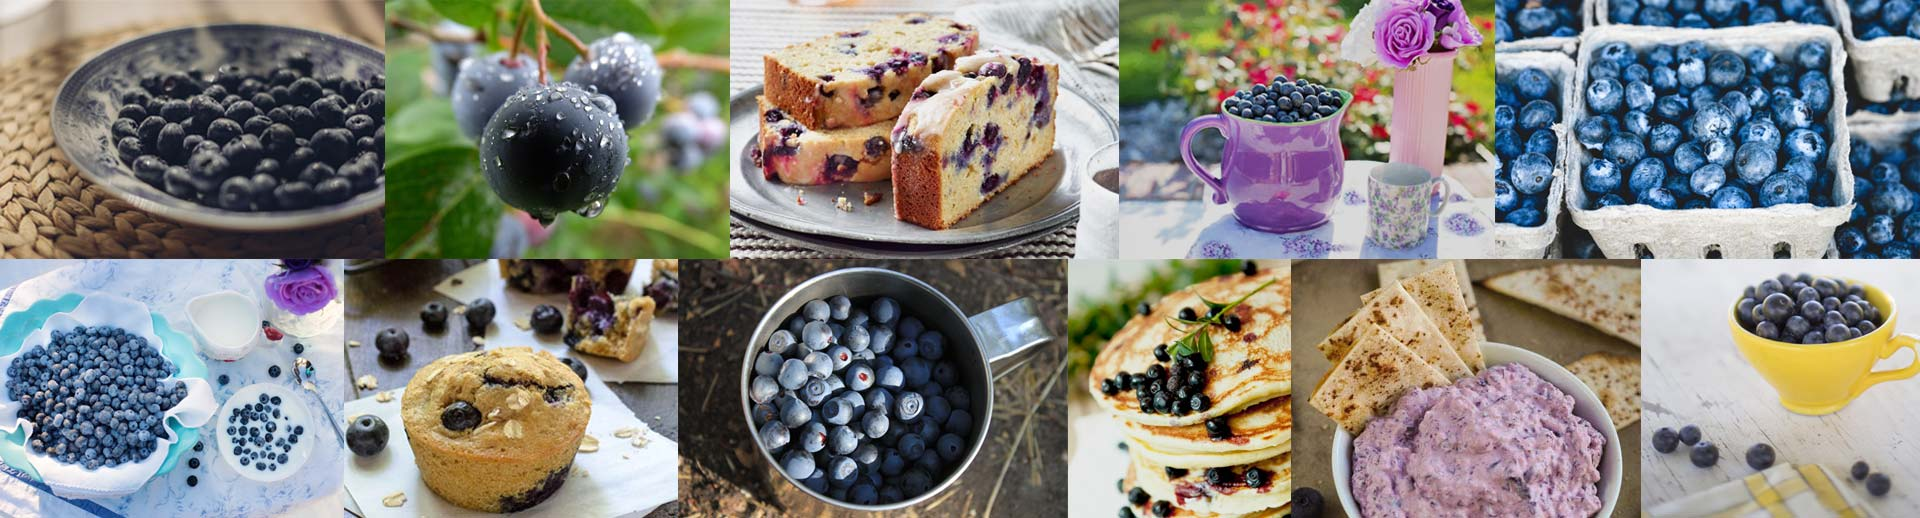 Blueberry bread, blueberries, blueberry muffins, blueberry pancakes, blueberry dip photos